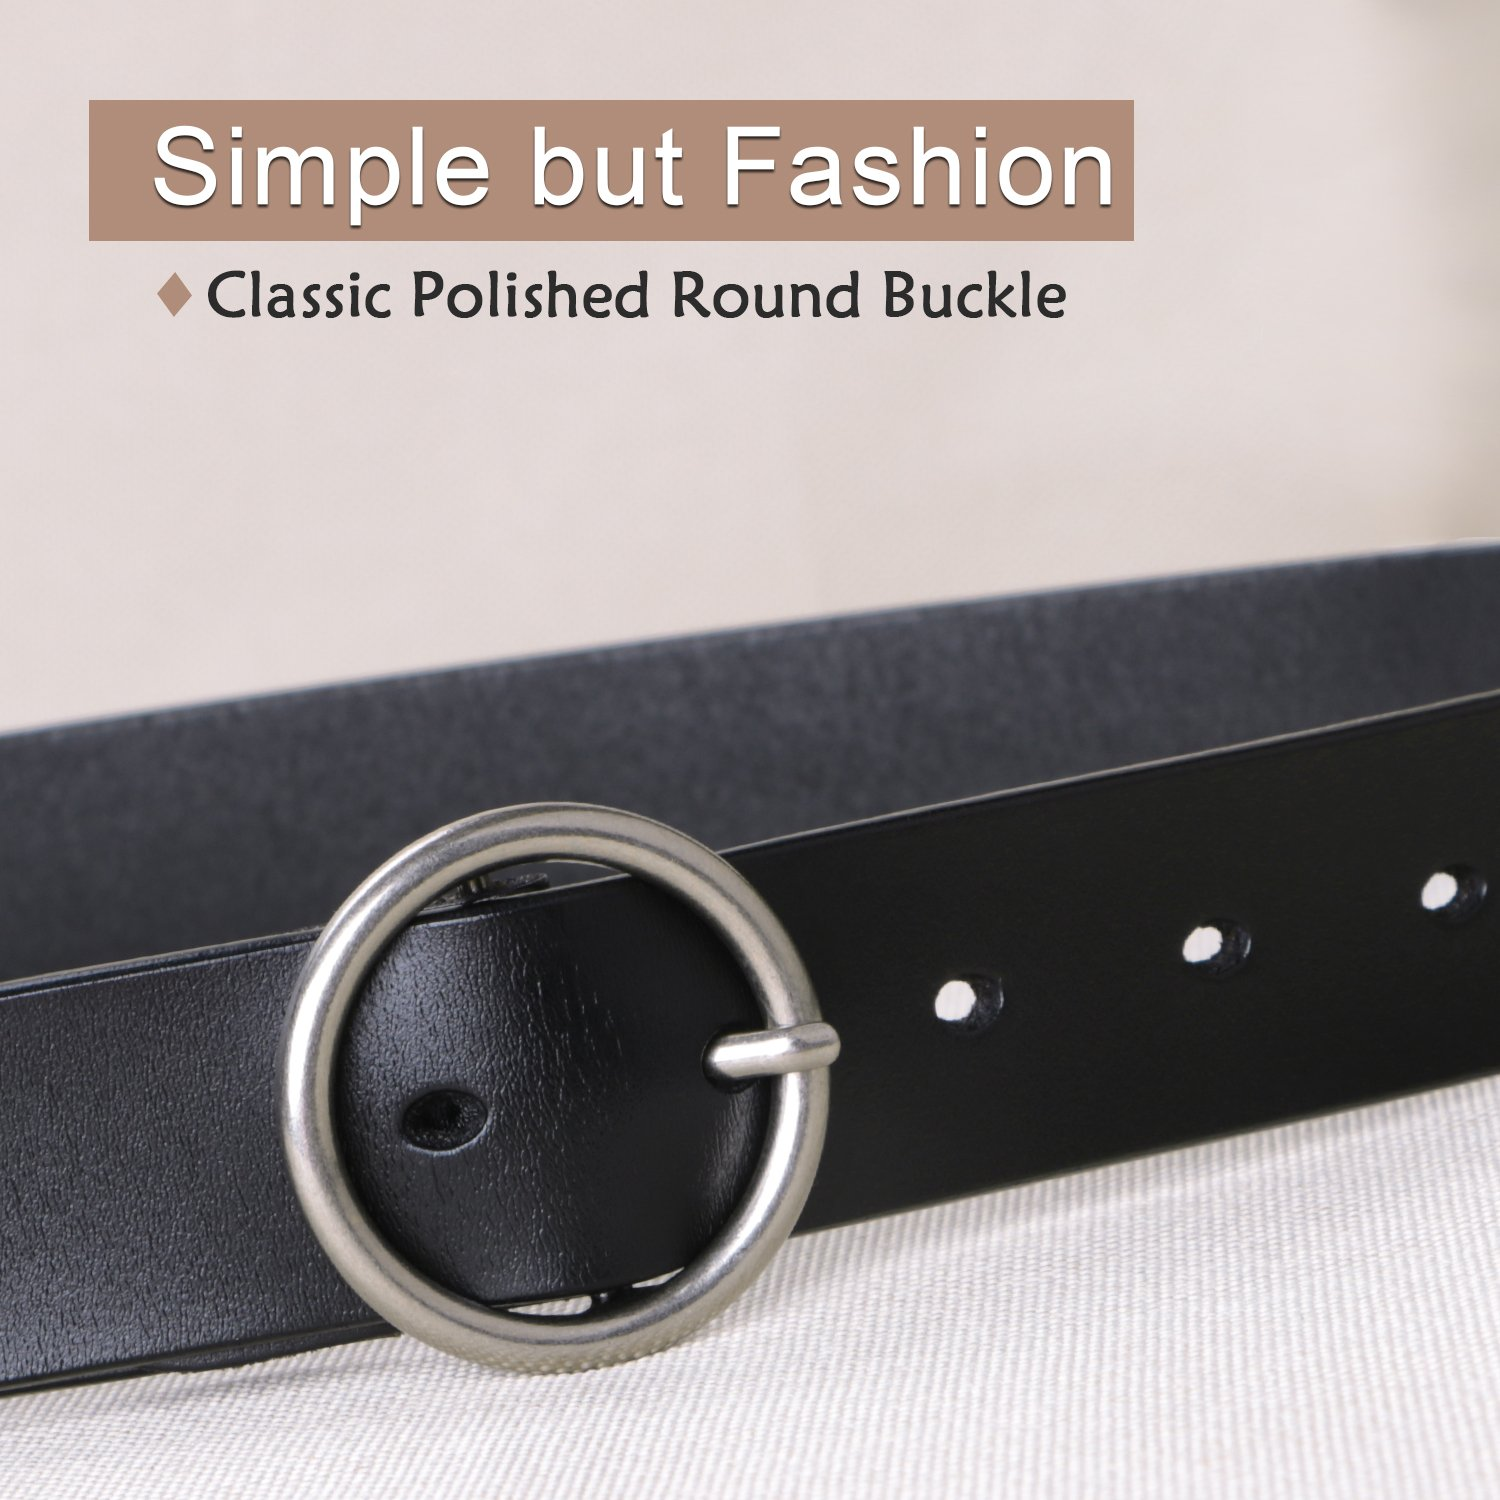 Women Black Leather Belt for Jeans,Fashion Belts for Women With Round Buckle By SUOSDEY by SUOSDEY (Image #4)